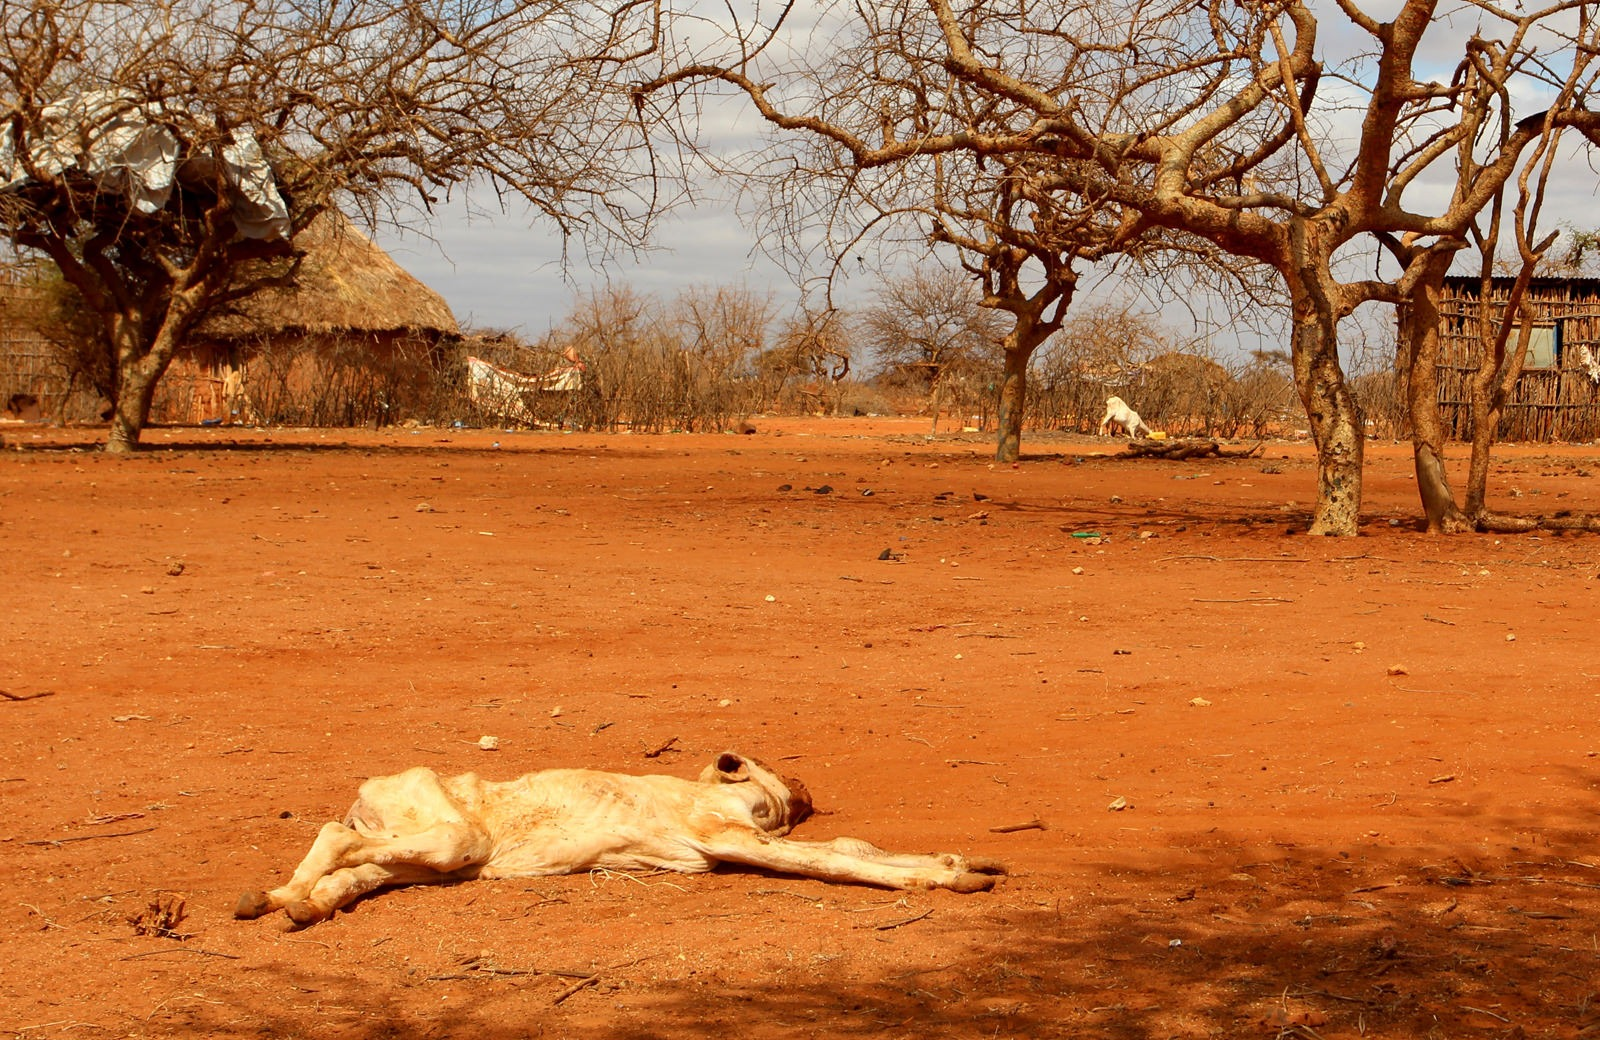 Drought has devastated Kenya, taking its toll on local agriculture and farming